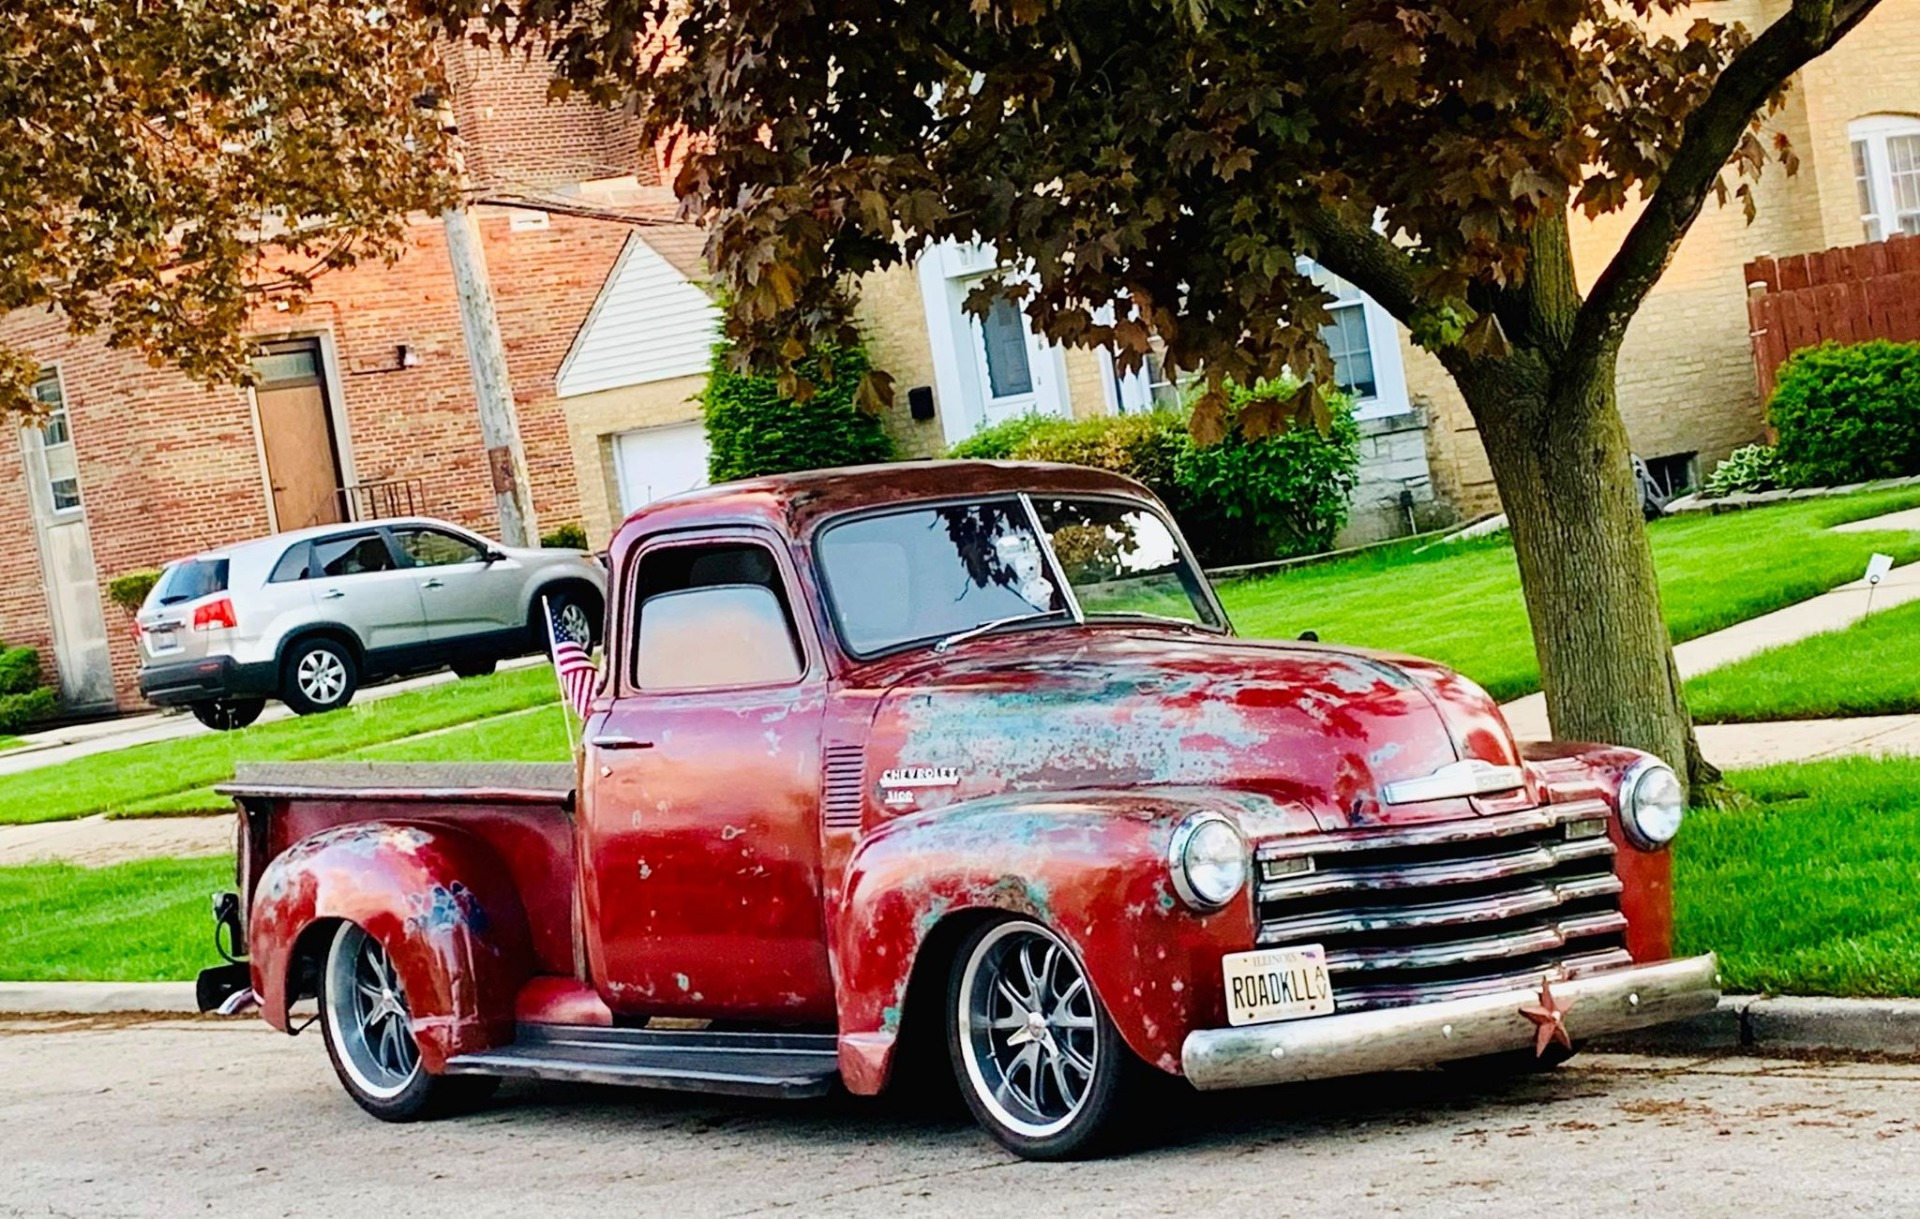 Used 1950 Chevrolet Pickup 3100 5 Window Patina Fuel Injected Pro touring | Mundelein, IL